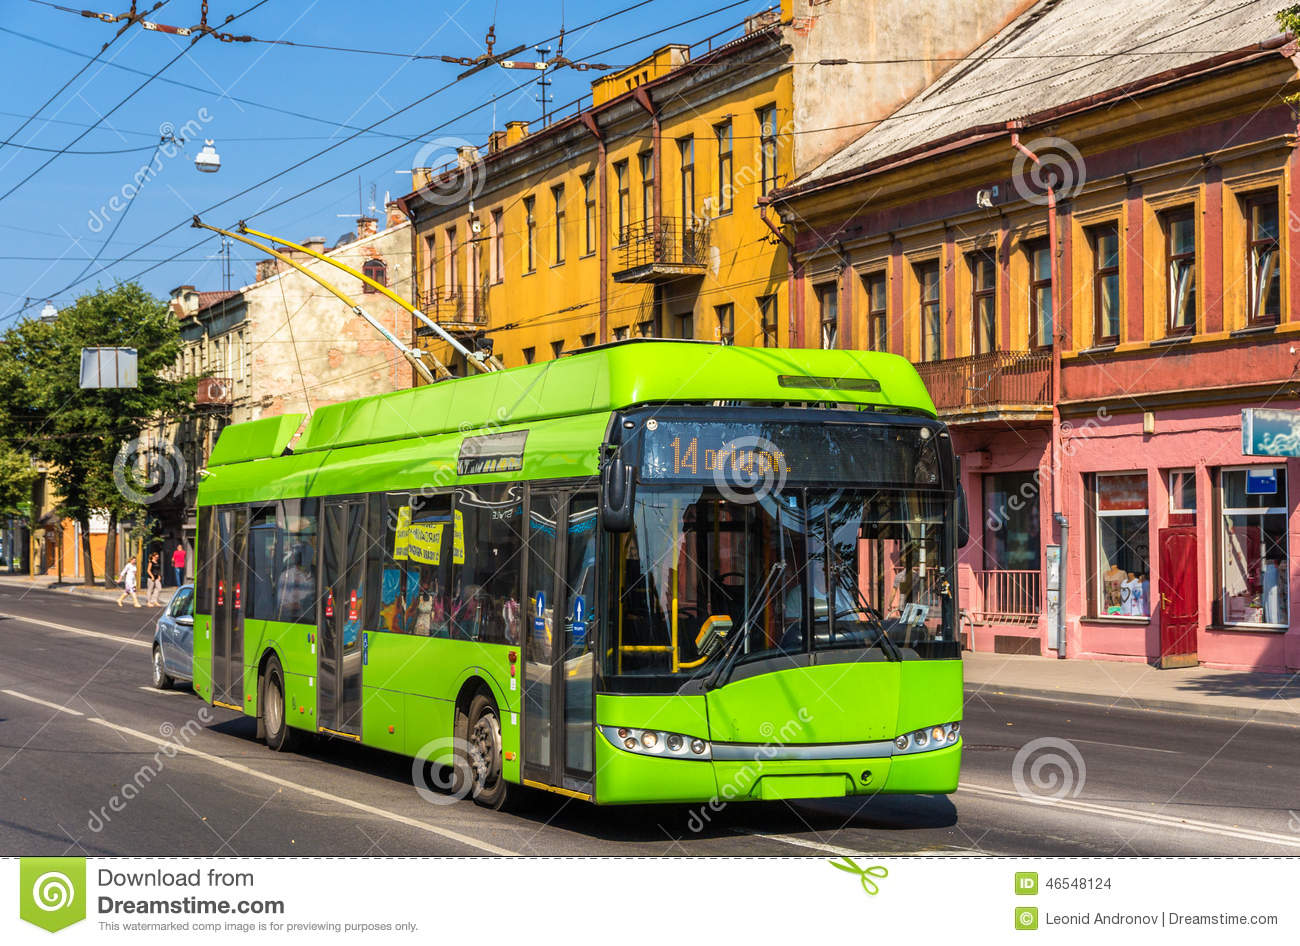 kaunas singles Timetable buses from vilnius to kaunas on the 2018-08-14, single ticket prices and travel time from vilnius - kaunas on the 2018-08-14.